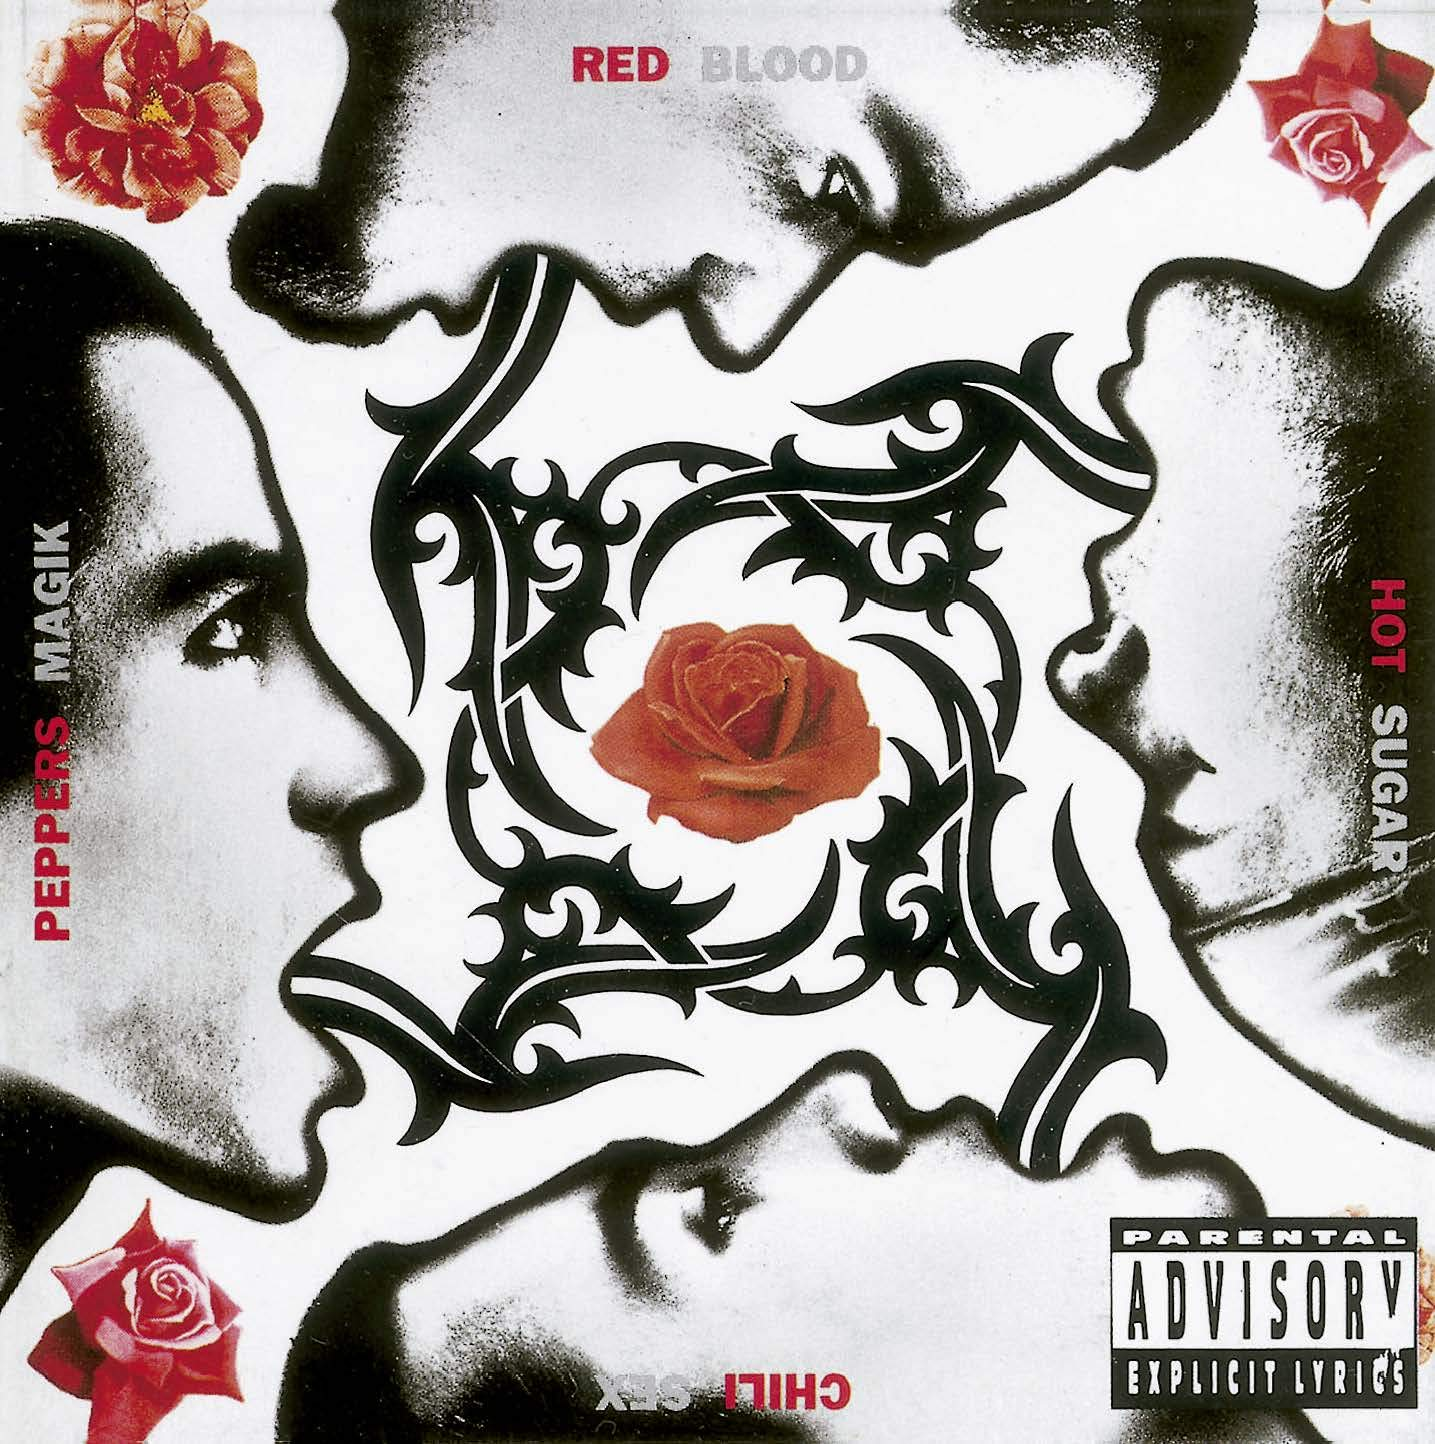 Anthony Kiedis had a brief relationship with Sinead O'Connor, which inspired this bittersweet, acoustic ballad. It's been a lament for the dumped ever since.